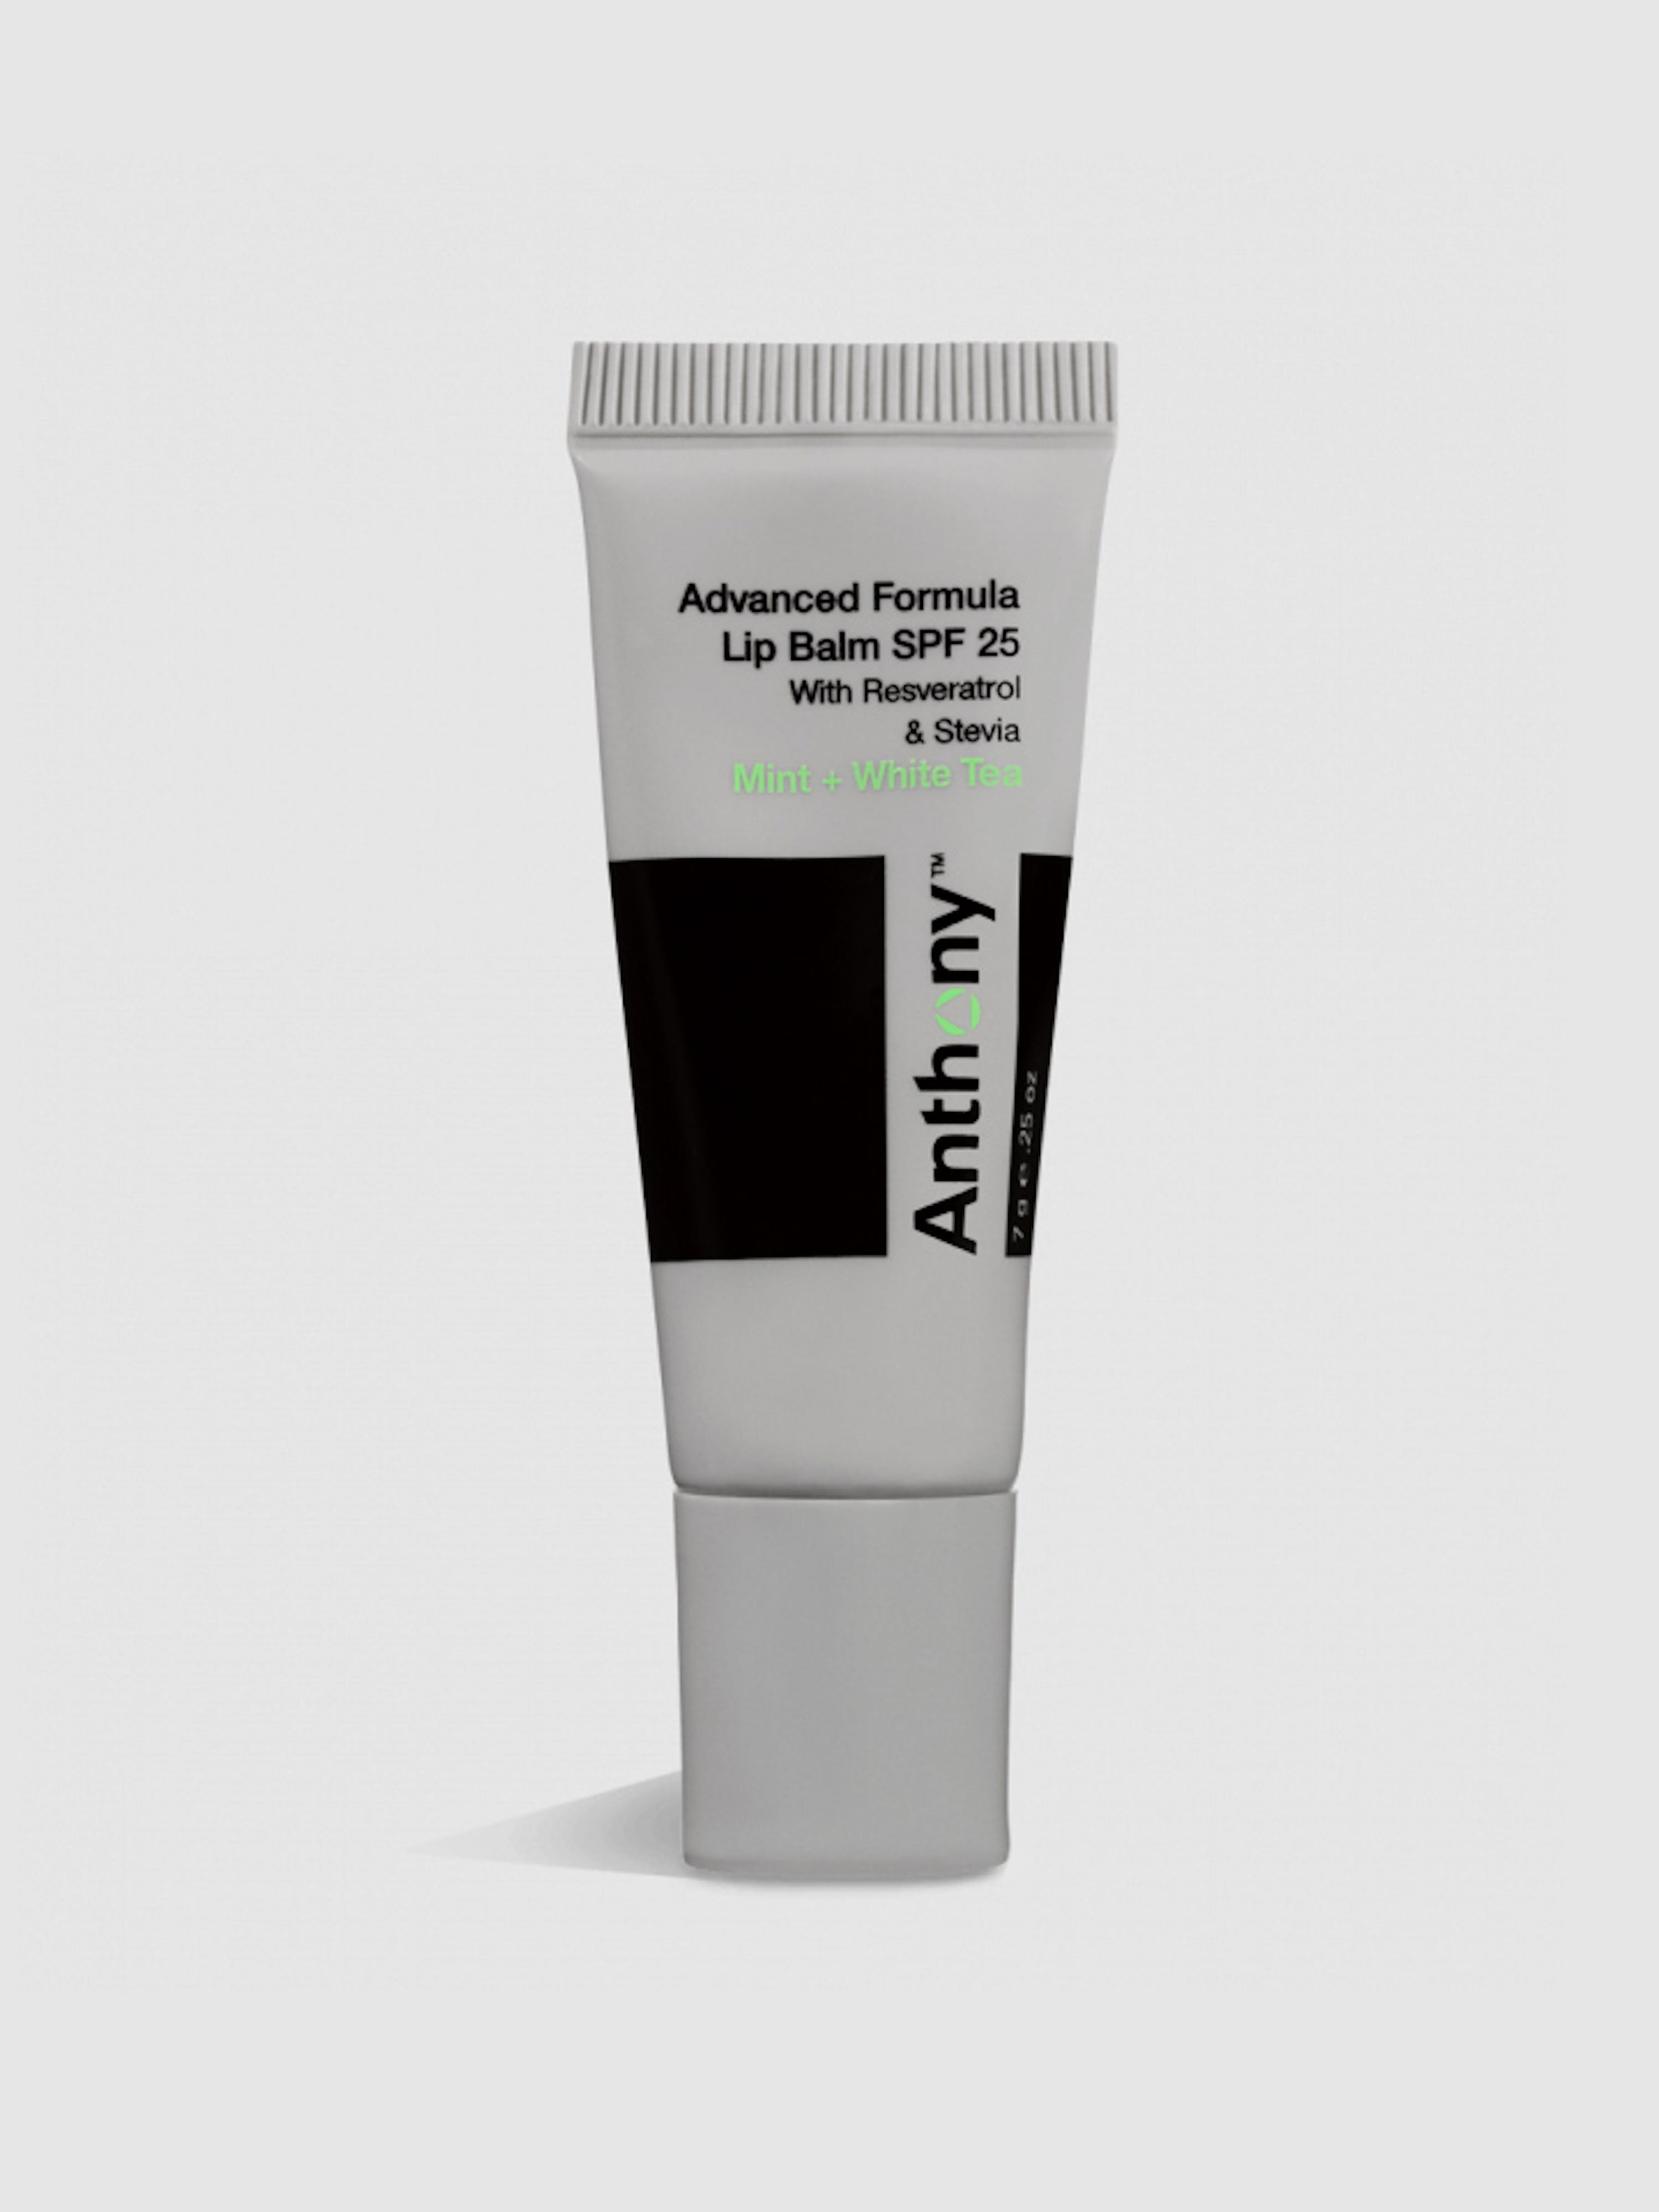 Anthony Mint + White Tea Lip Balm (spf 25)